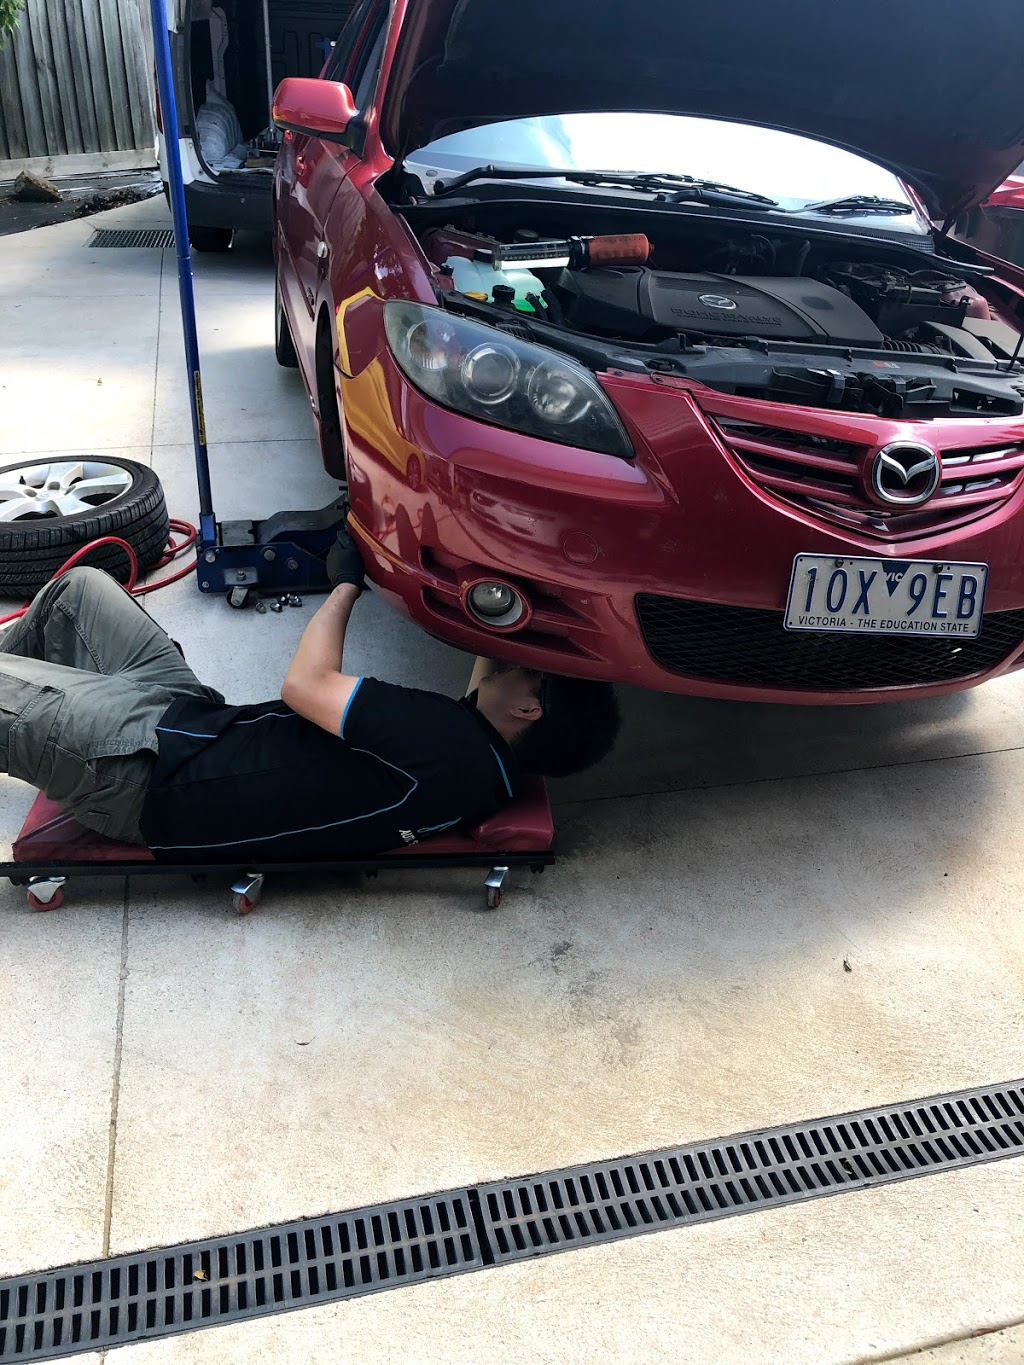 NT Auto Services | car repair | 2/12 Wilson St, Ferntree Gully VIC 3156, Australia | 0415651718 OR +61 415 651 718